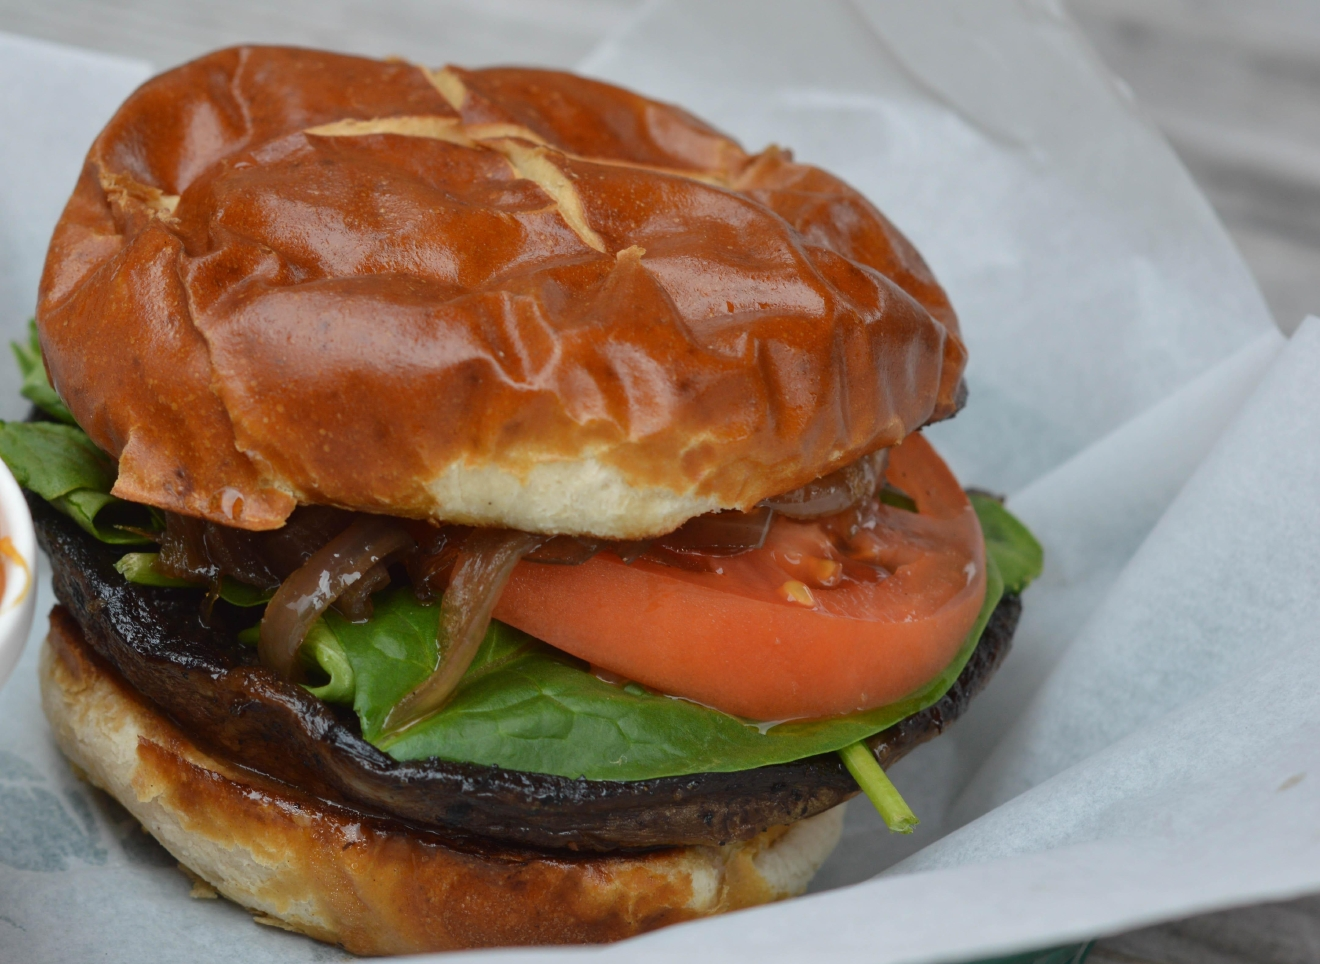 When Buns Cry: Portobello mushroom on a pretzel bun with spinach, tomato, grilled onions, and balsamic dressing / Image: Liliana Dillingham / Published: 11.12.16